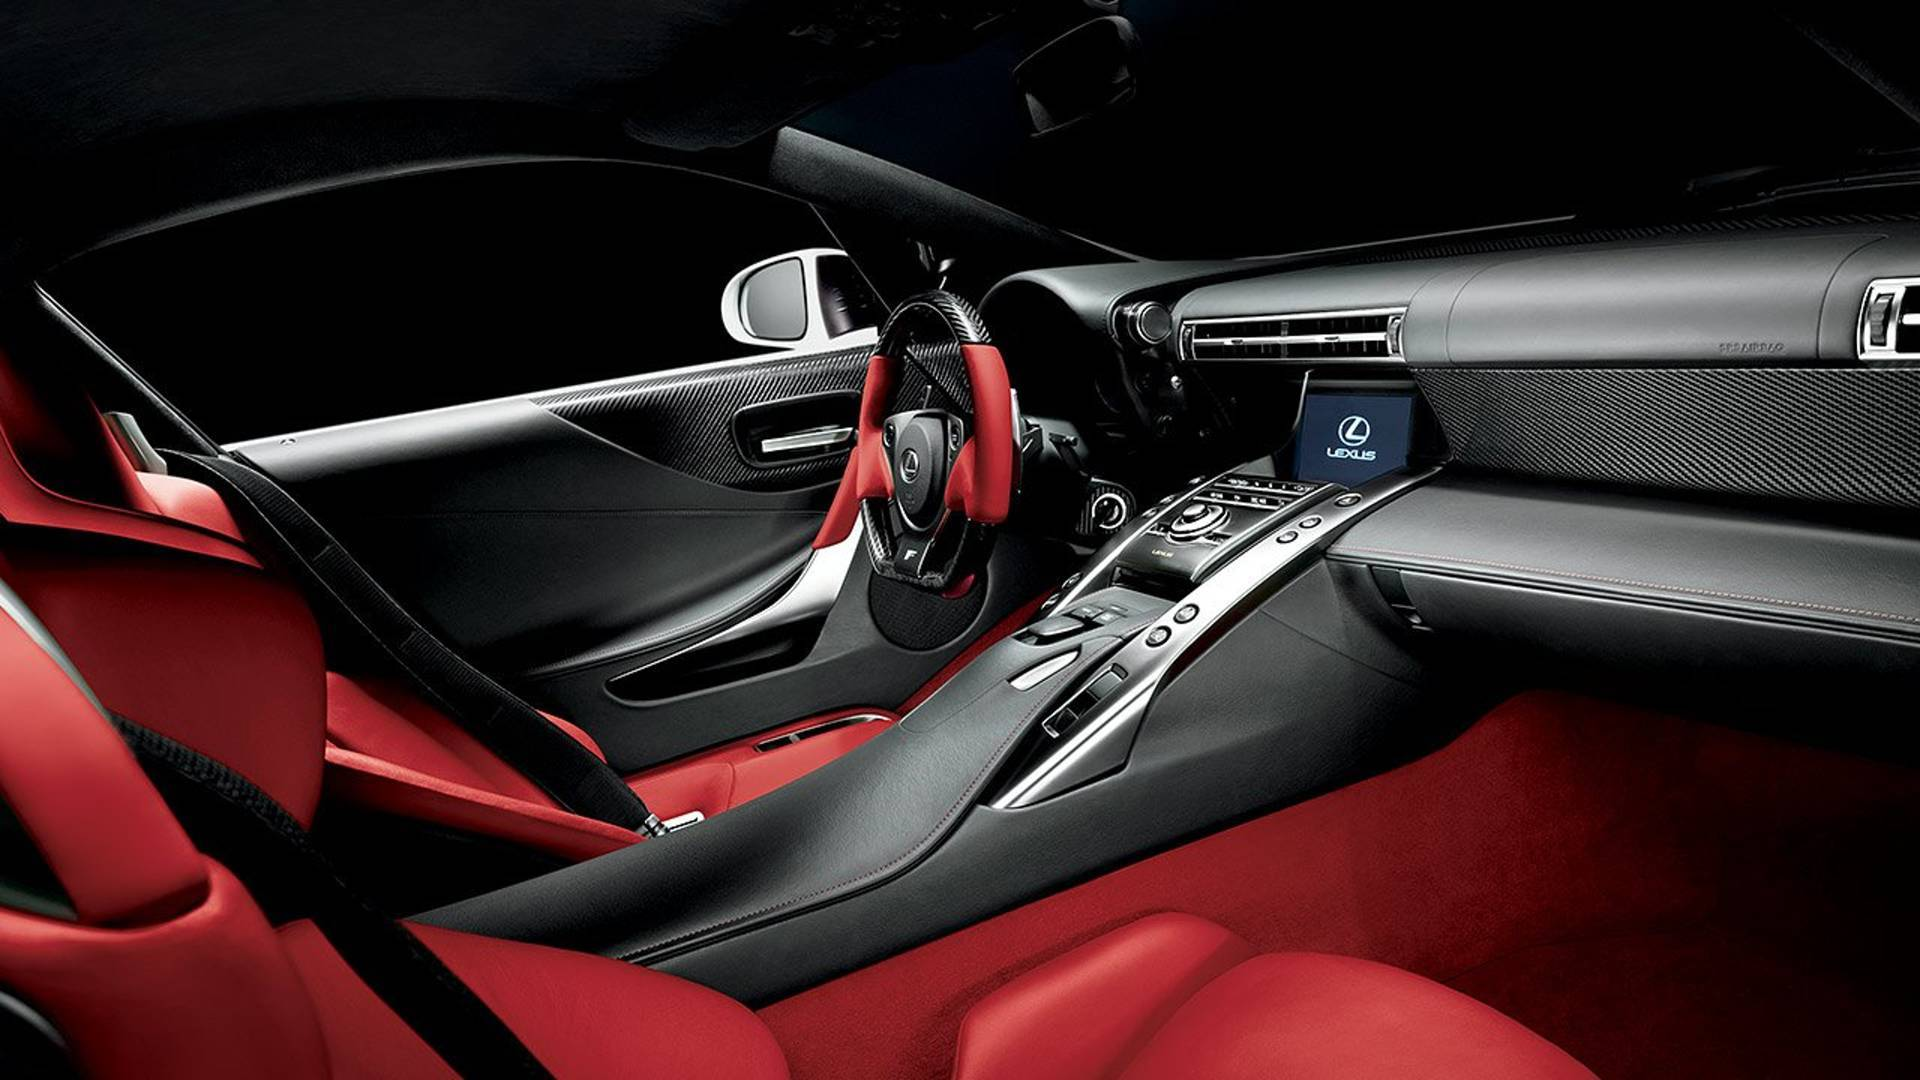 Lexus LFA Supercar Photo Gallery   See Interior And Exterior Images Of The Lexus  LFA